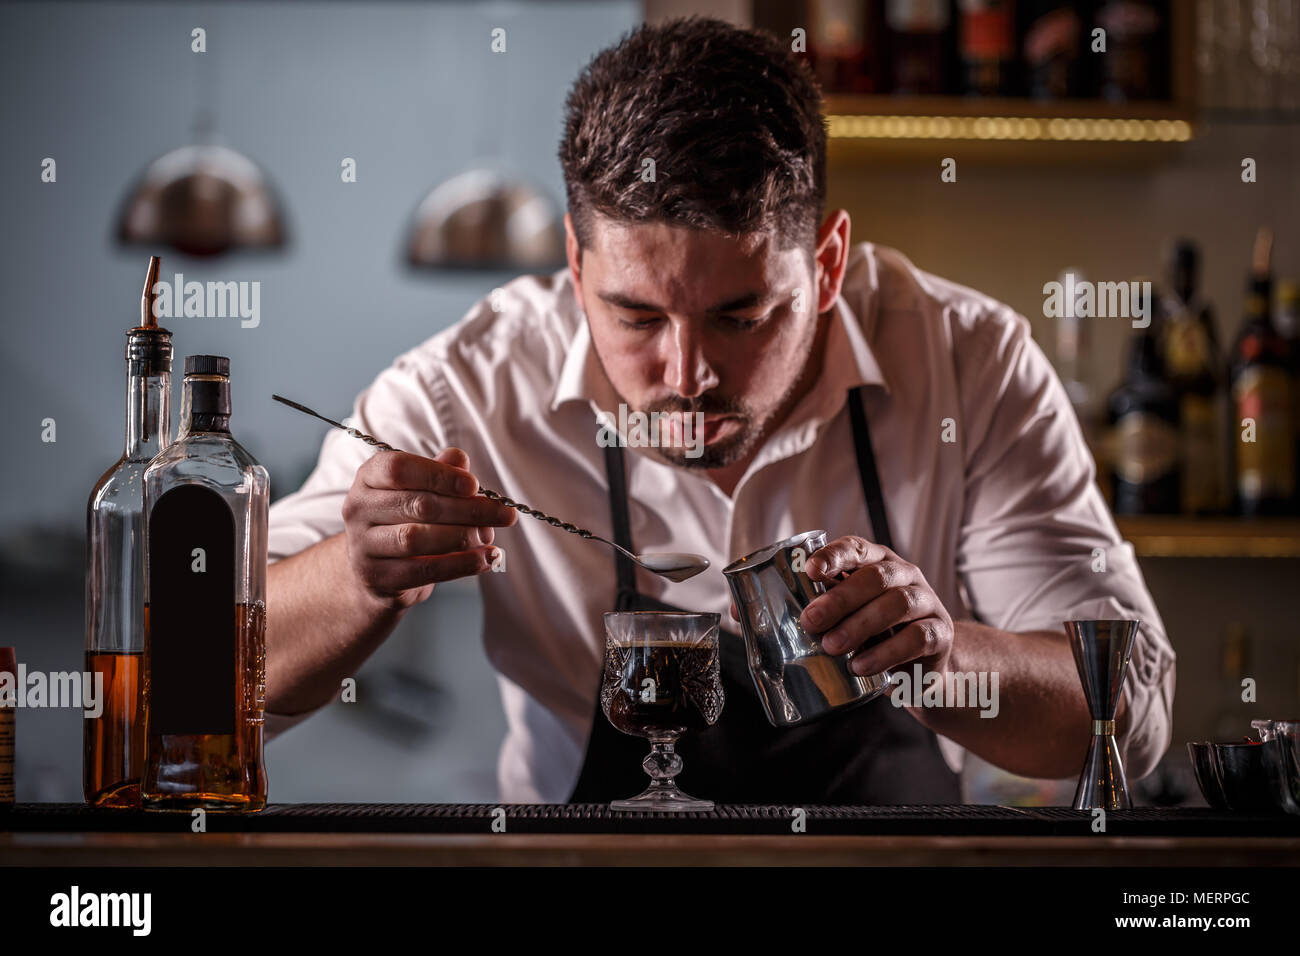 Bartender decorating coffee cocktail with milk foam - Stock Image